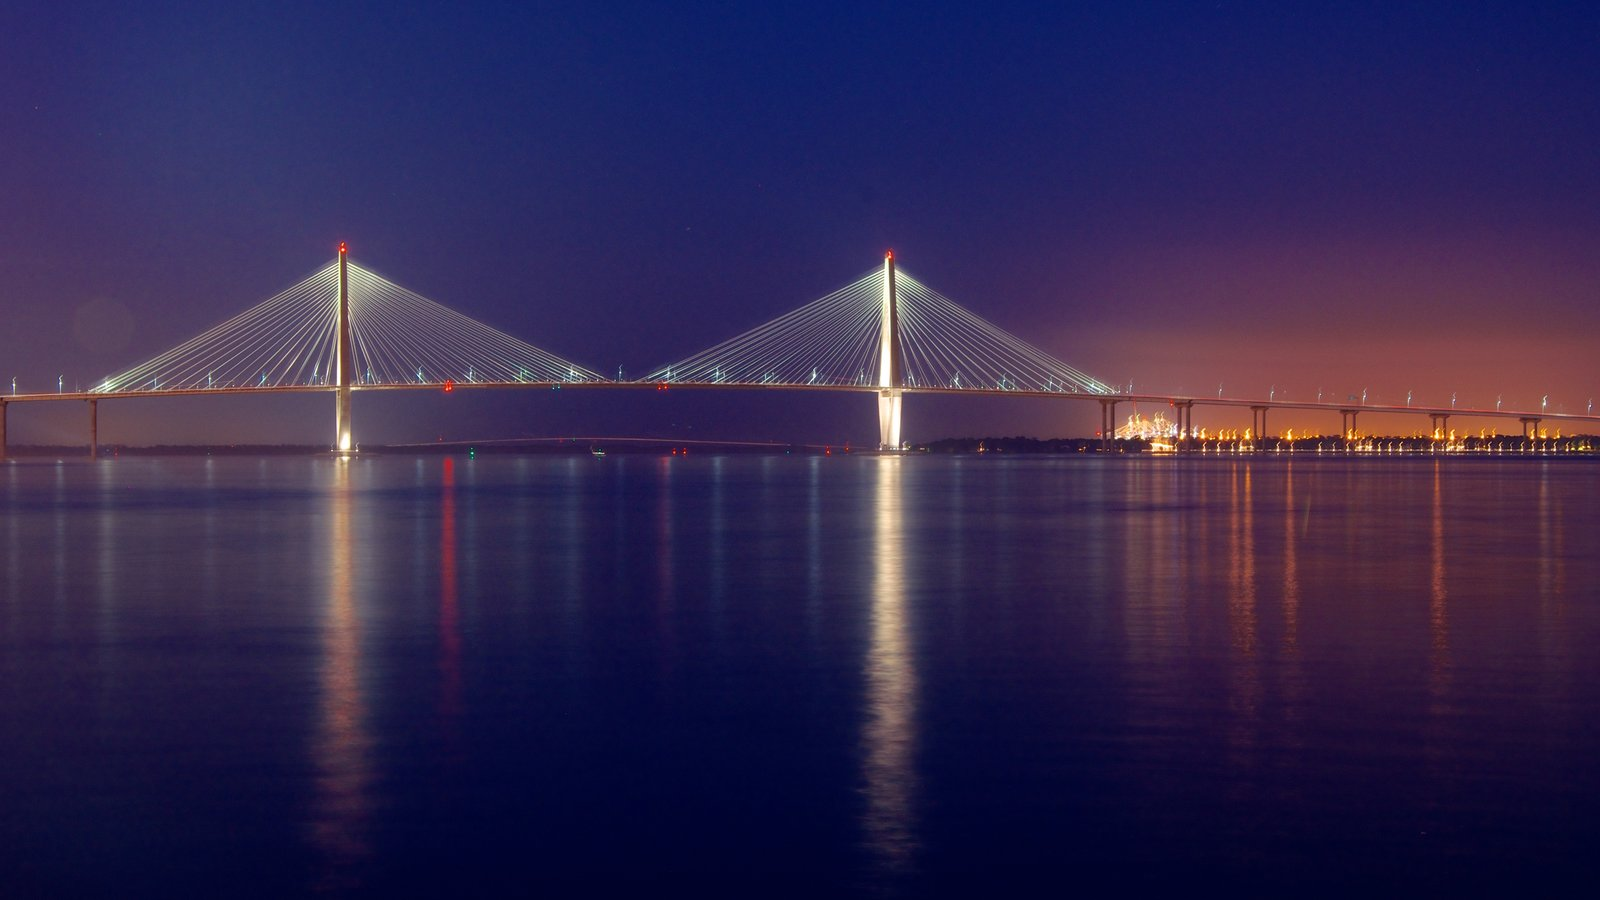 Charleston Waterfront Park showing night scenes